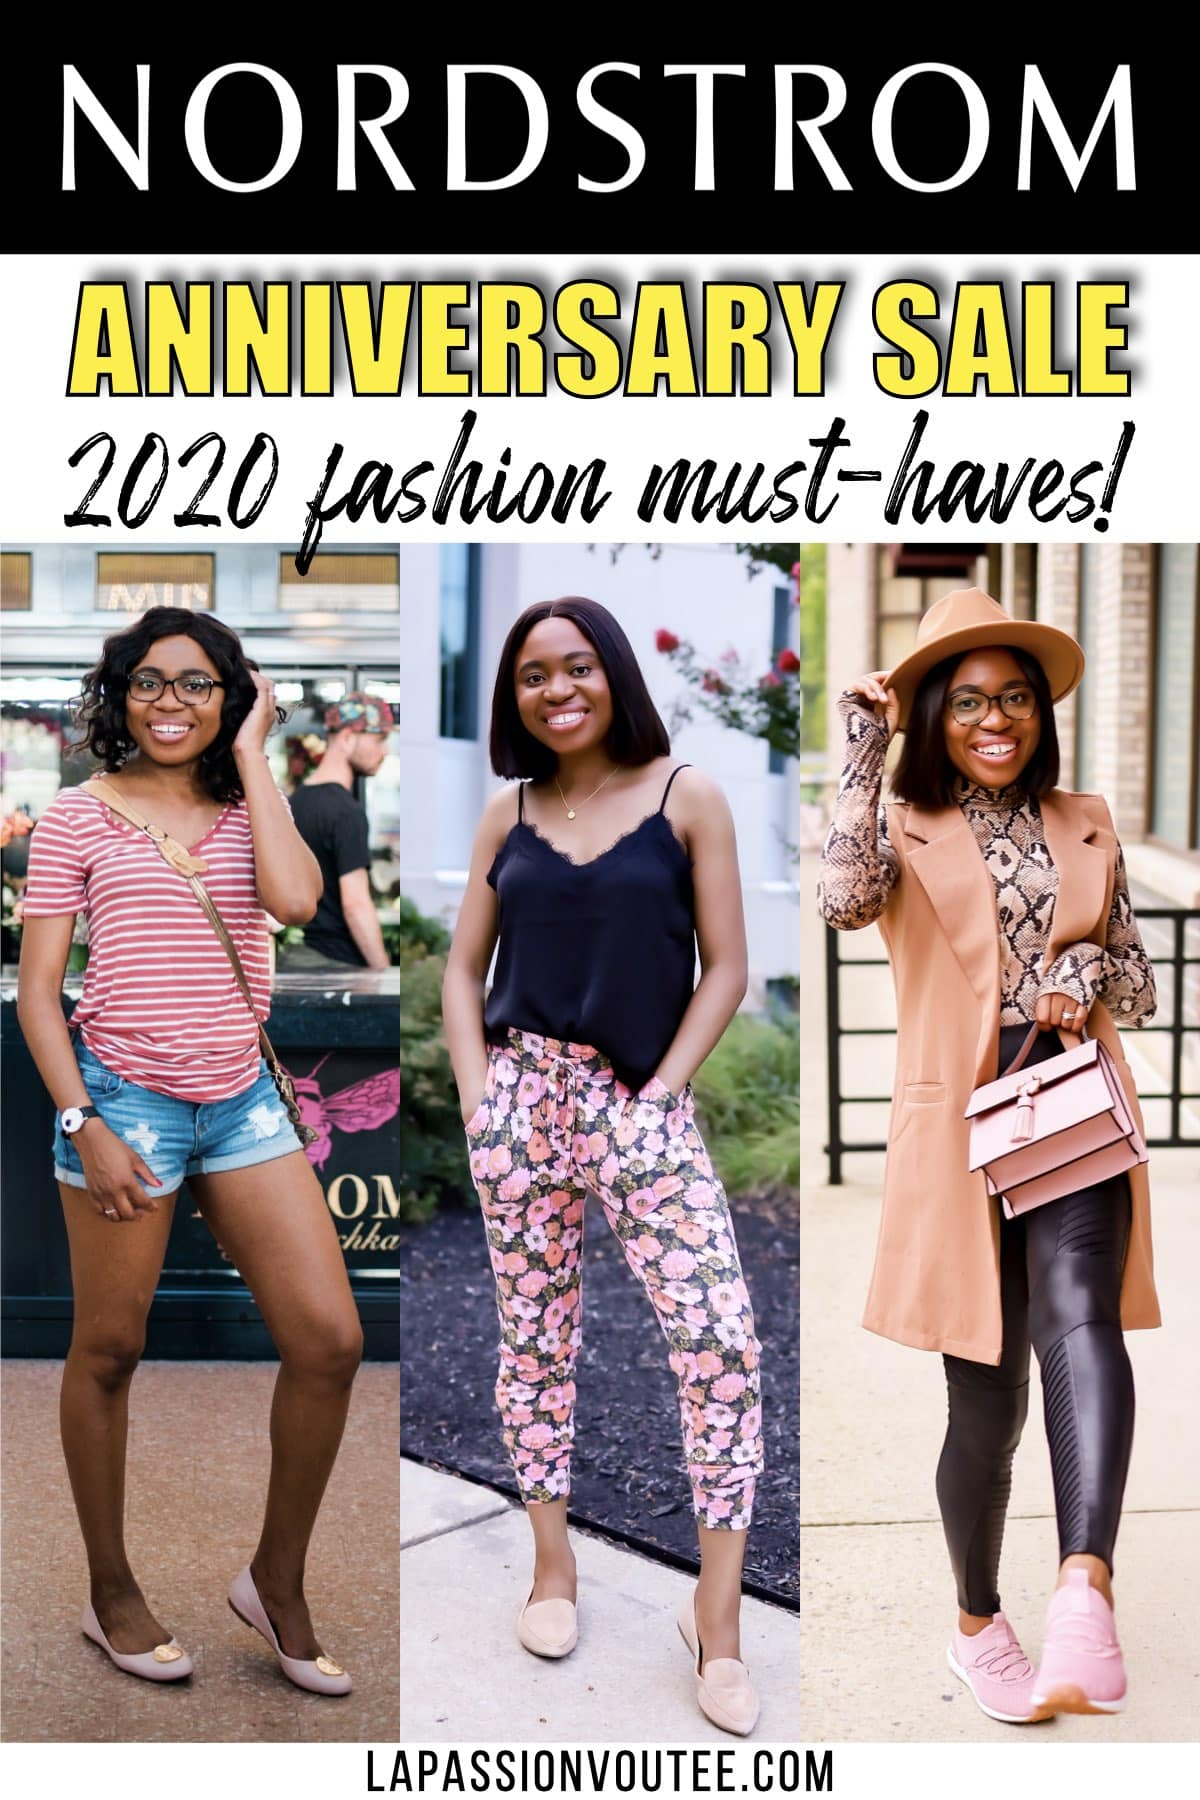 The most anticipated sale of the year is back at Nordstrom. Keep reading to discover a roundup of the Nordstrom Anniversary Sale 2020 picks worth getting this year. #nordstrom #anniversary sale